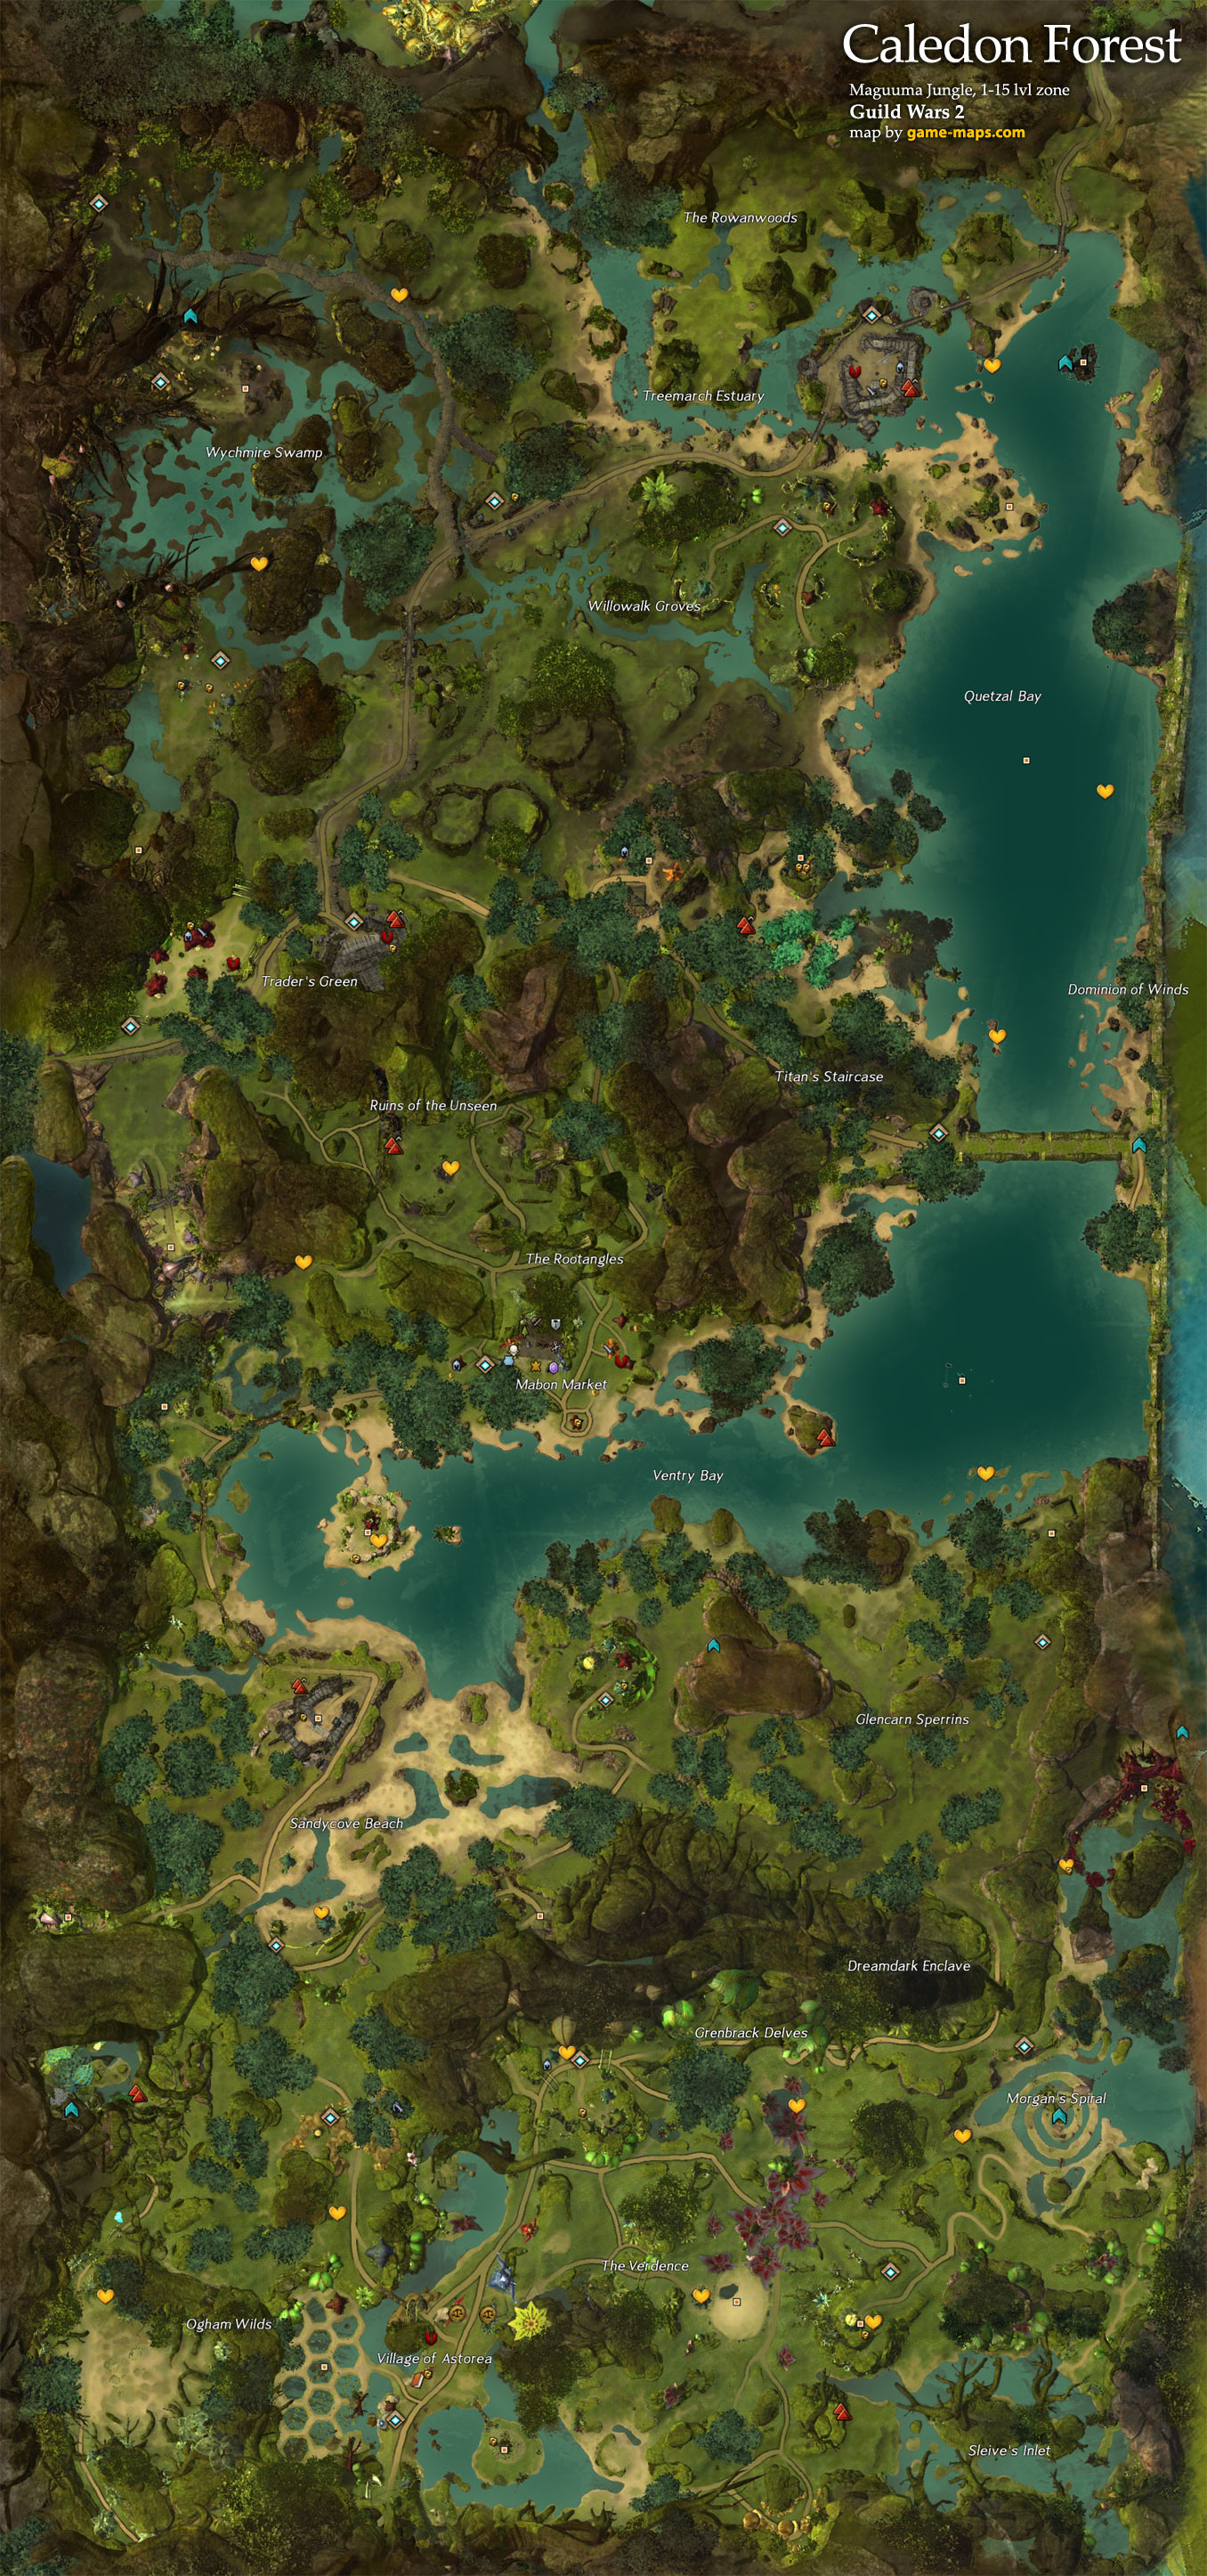 Gw2 Metrica Province Hero Points : metrica, province, points, Caledon, Forest, Guild, Game-maps.com